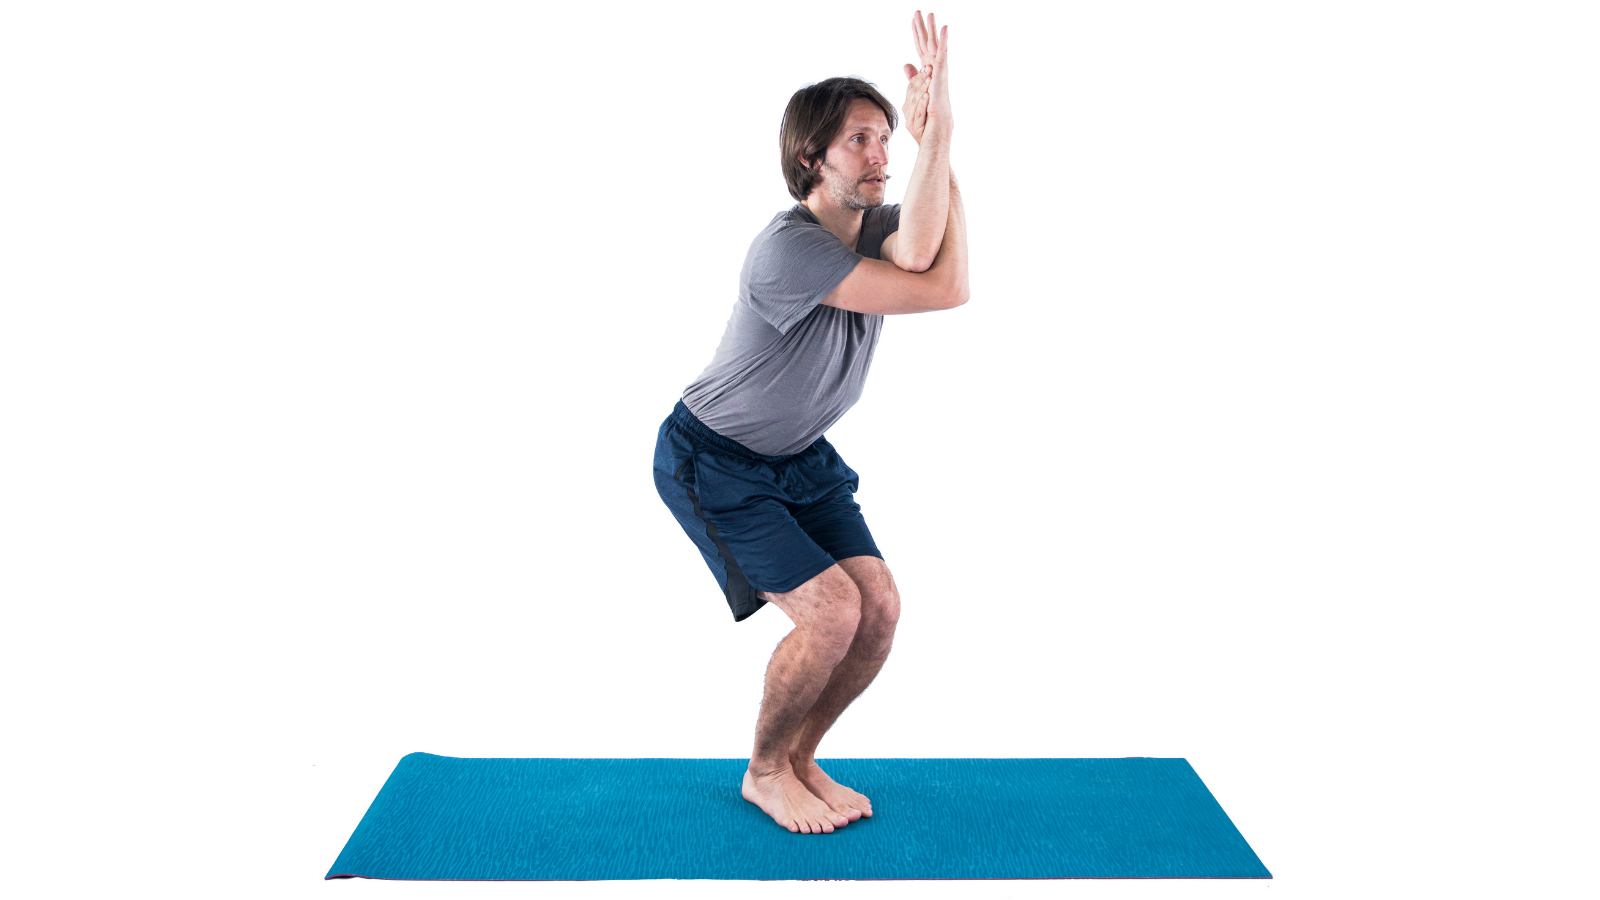 How to practice Eagle Pose (Sanskrit name: Garudasana) in a modified way by removing an element of the pose